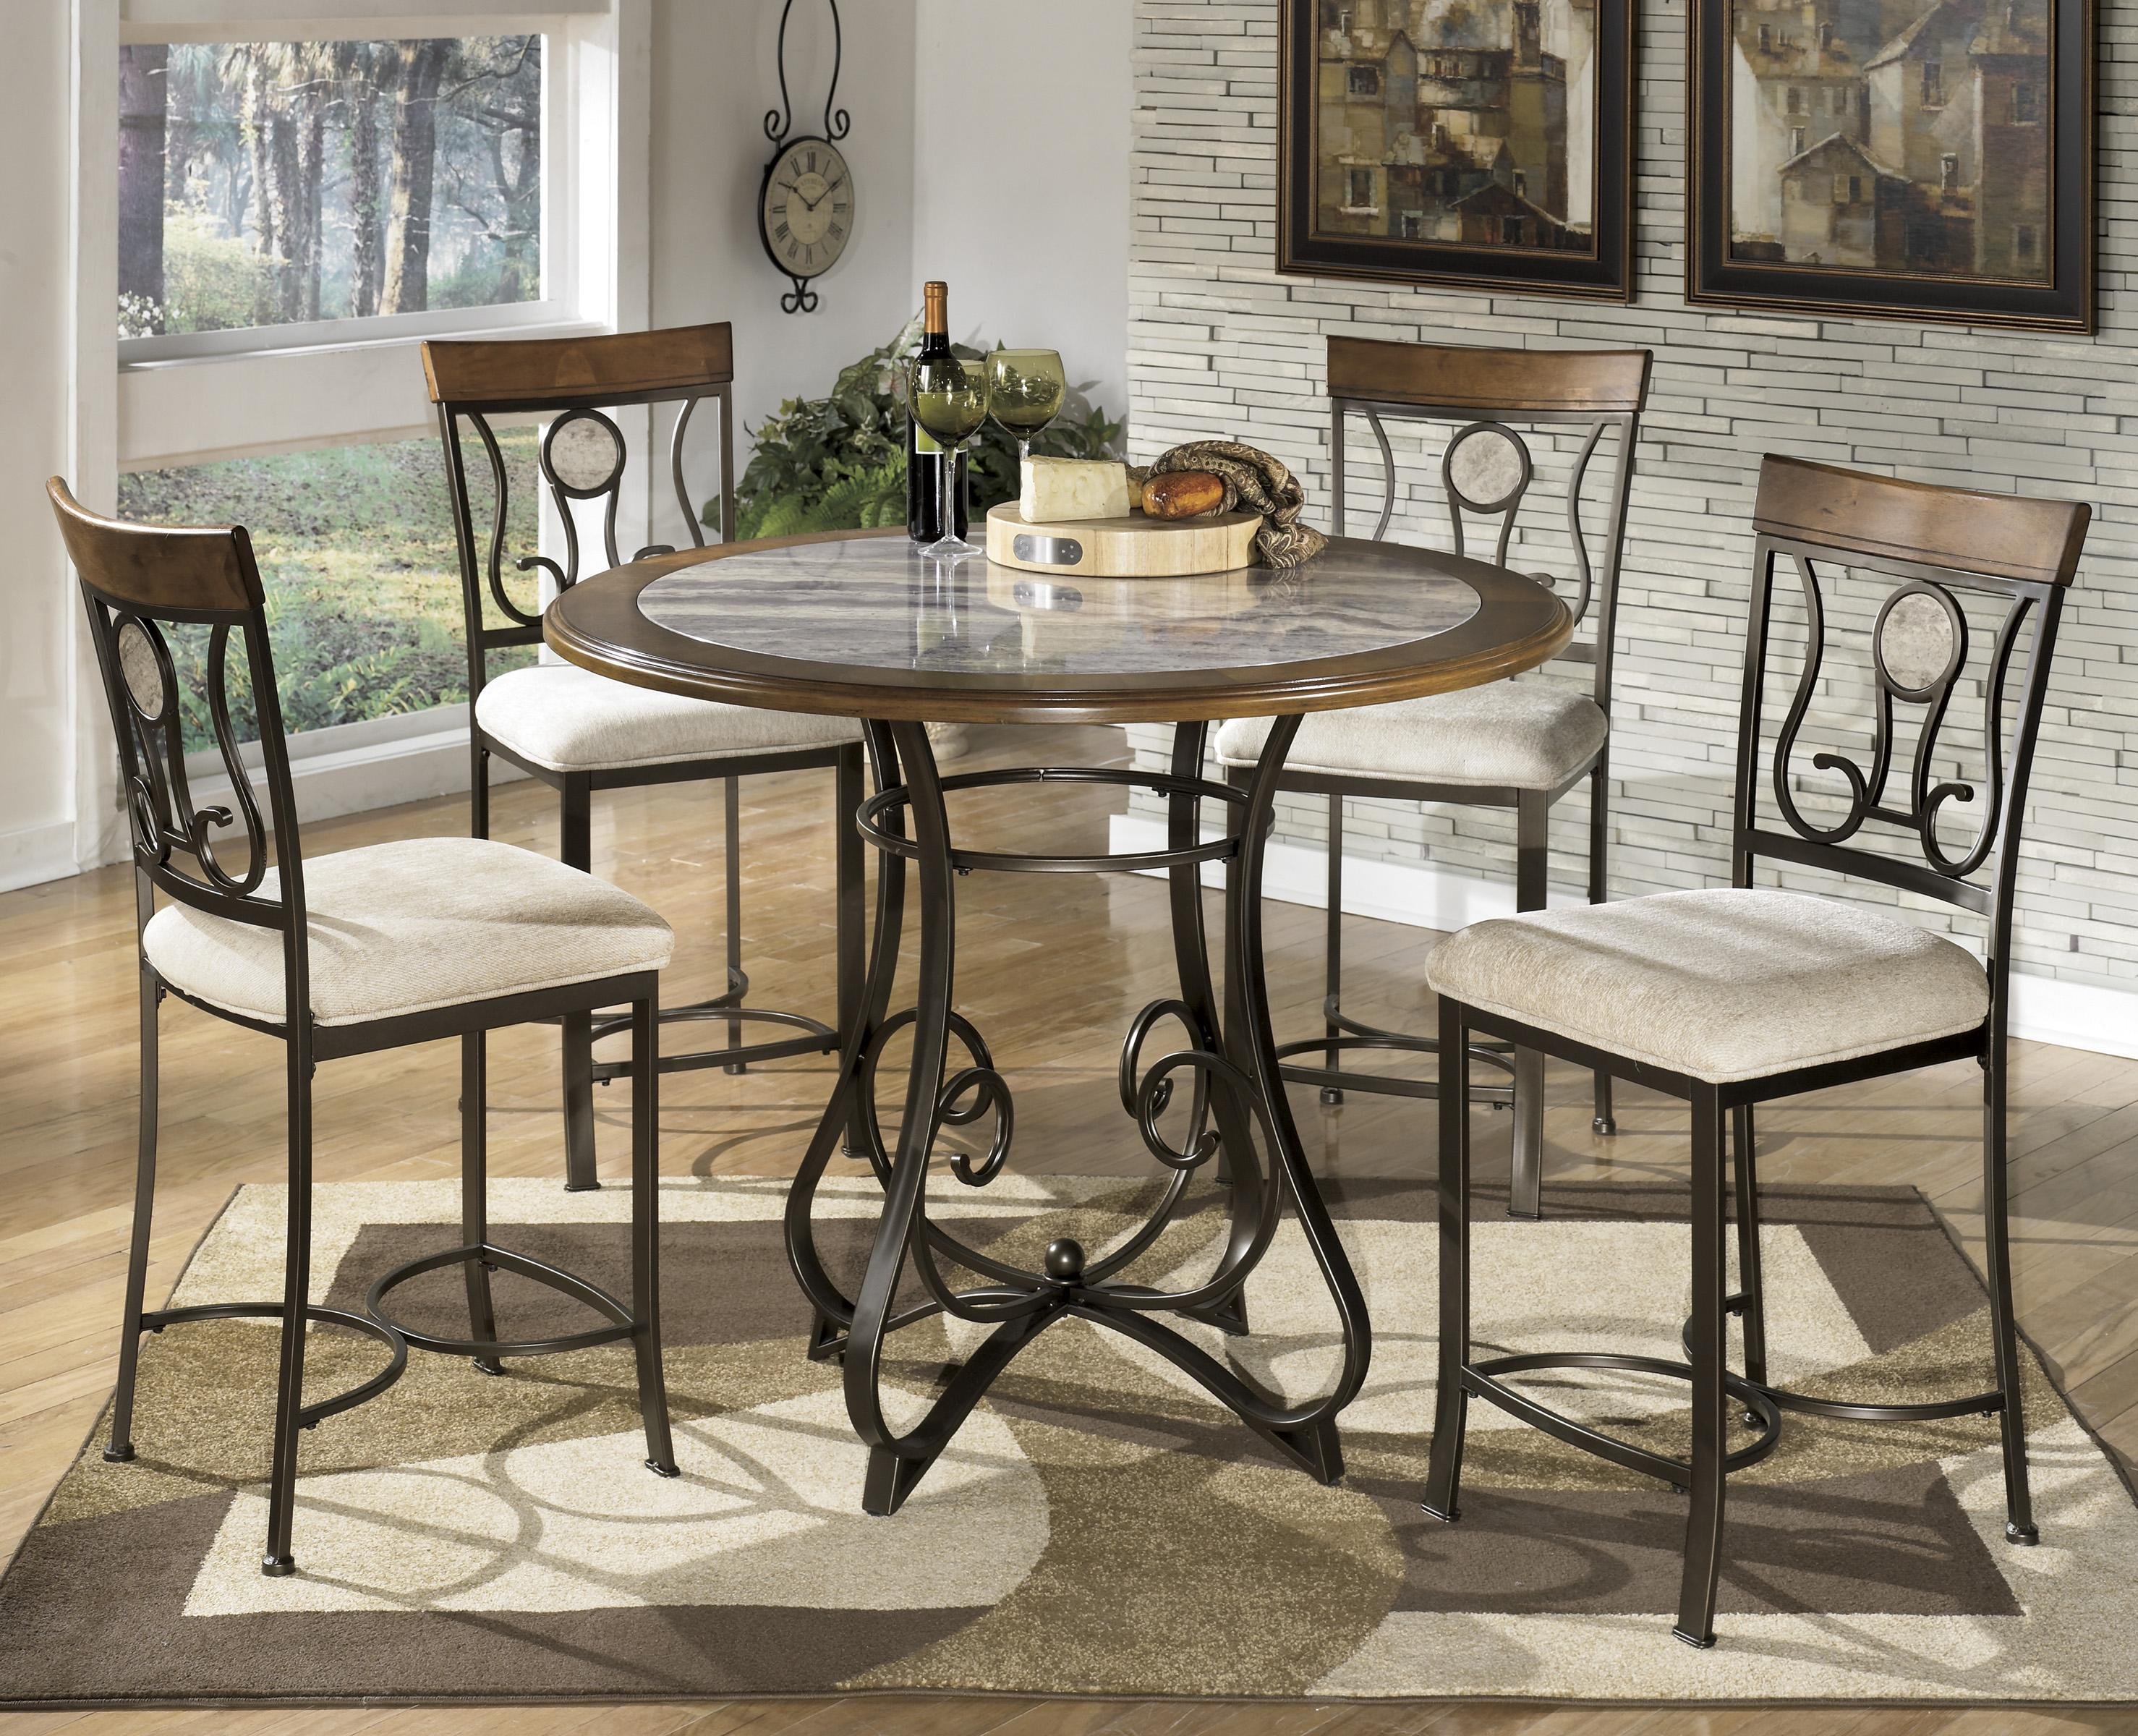 5piece round counter table set with steel frame u0026 faux marble table top